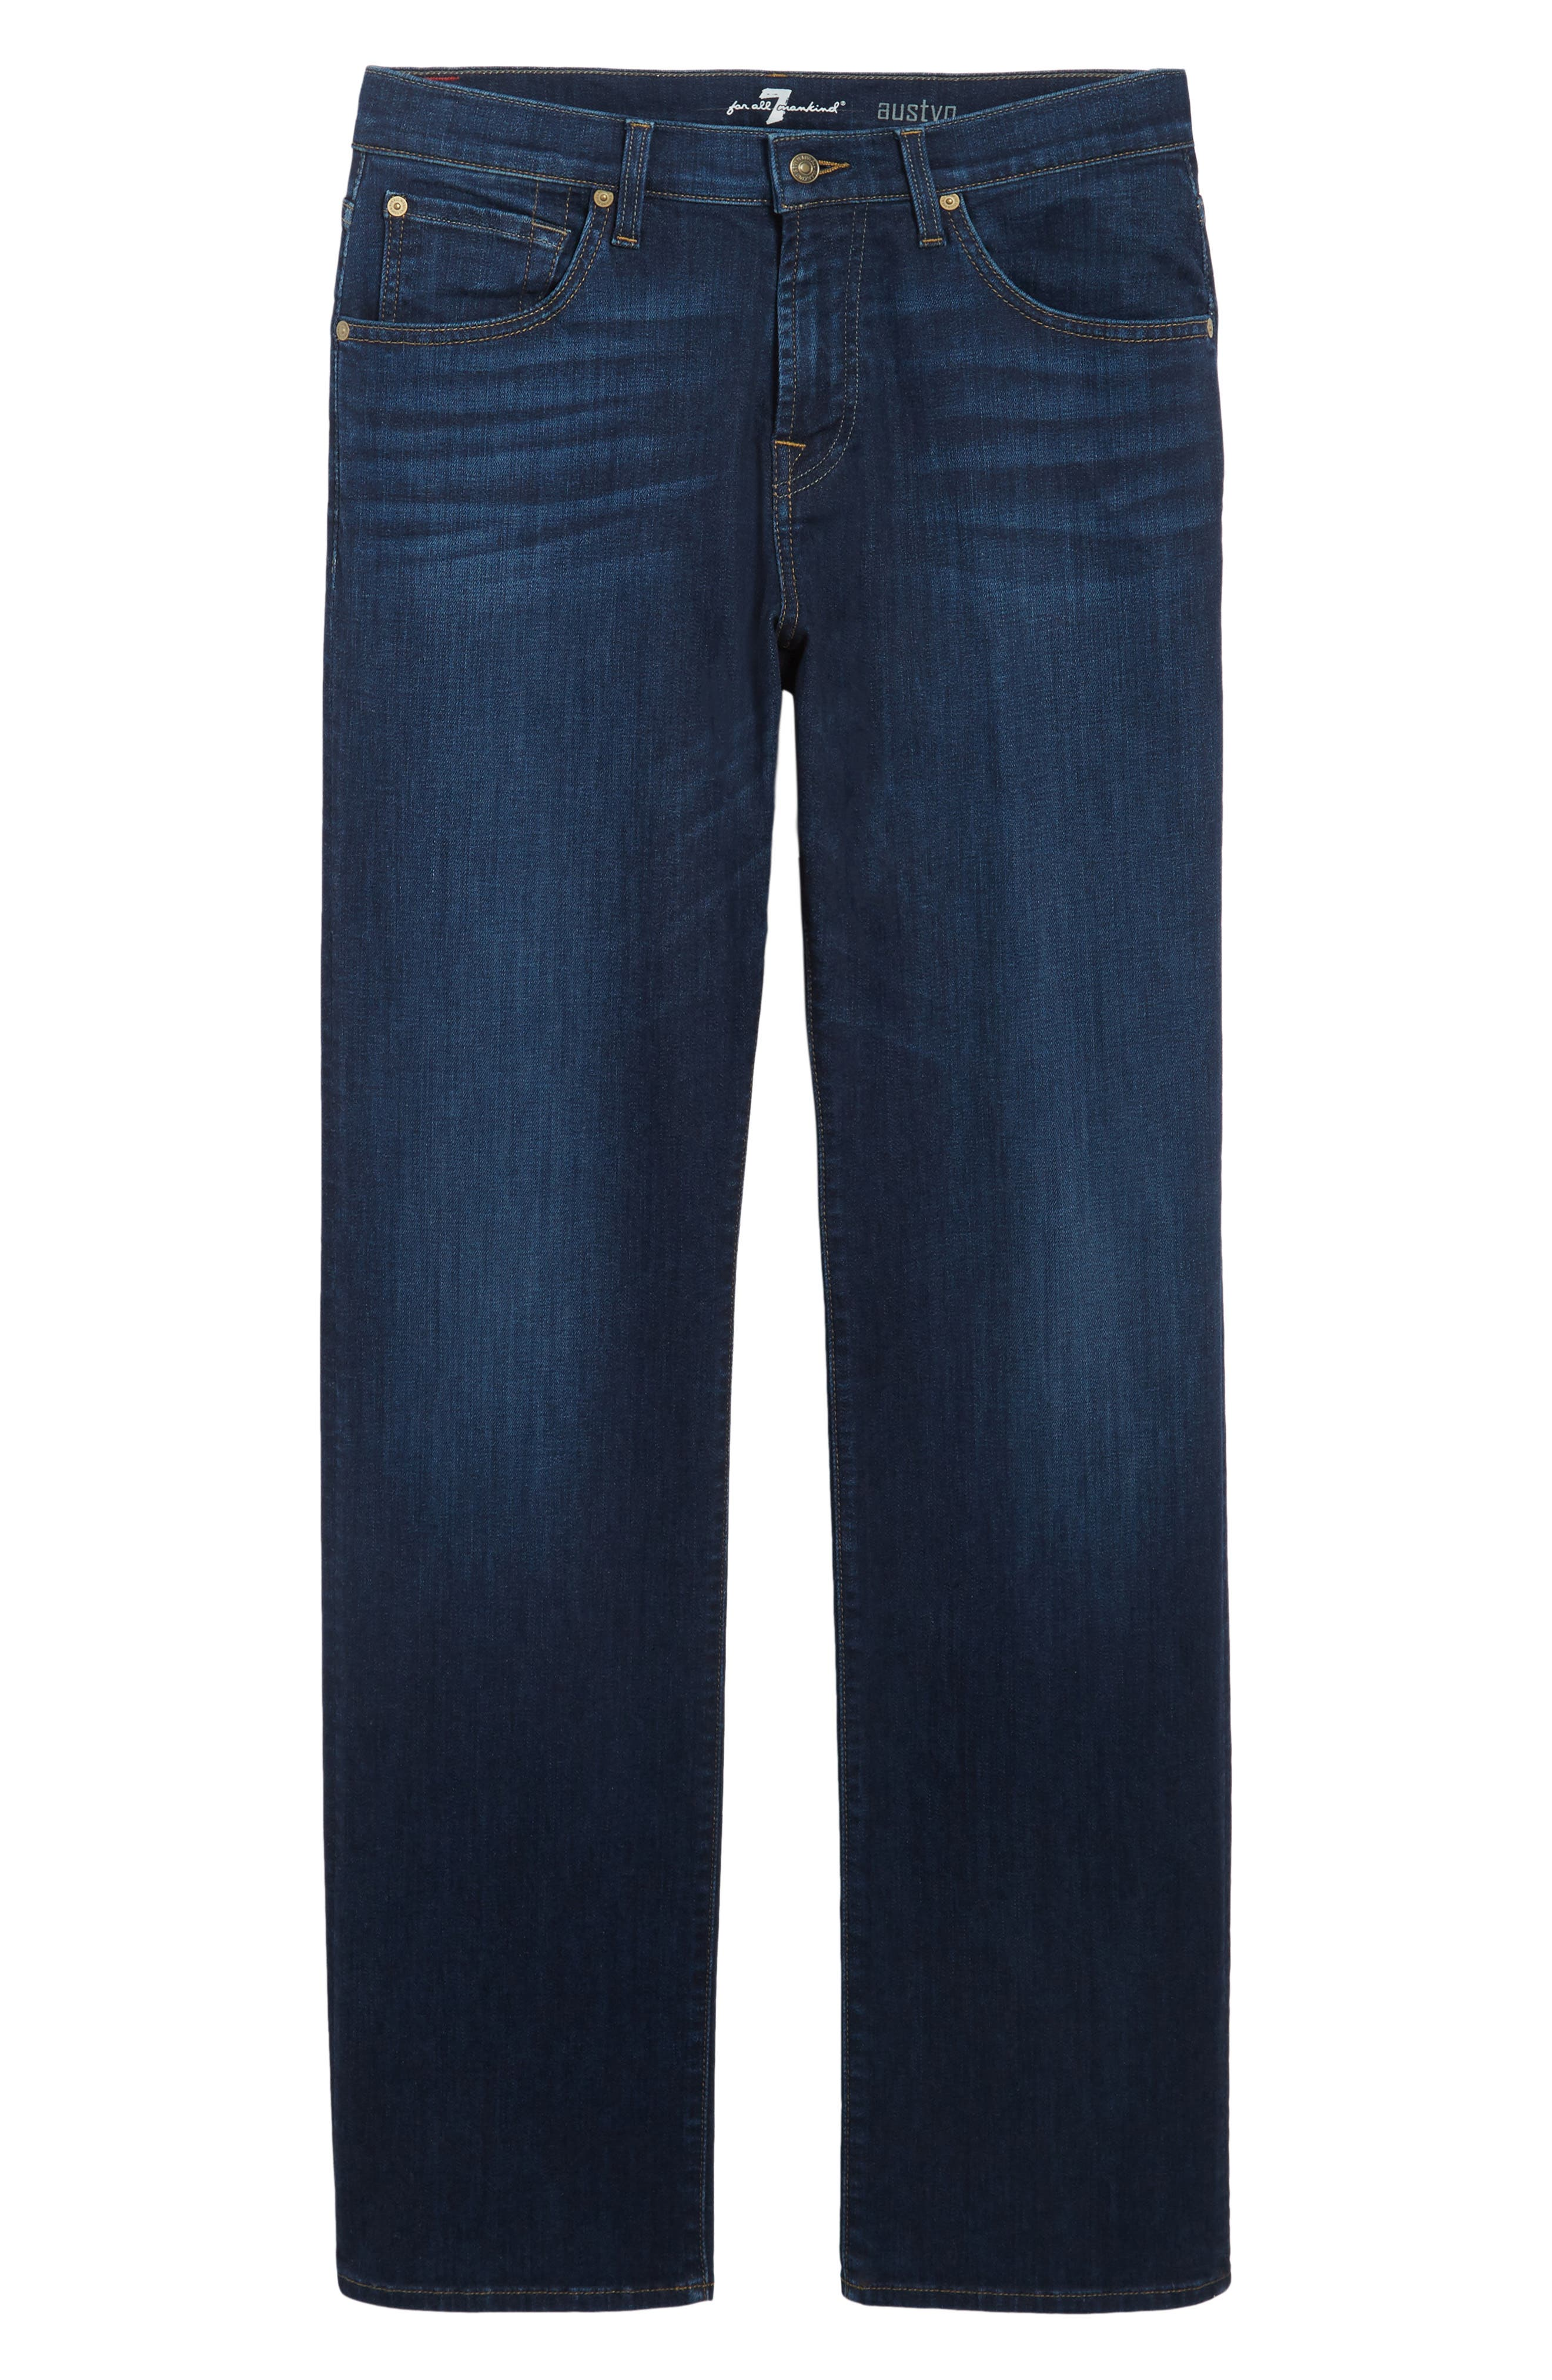 Austyn Relaxed Fit Jeans,                             Alternate thumbnail 6, color,                             402